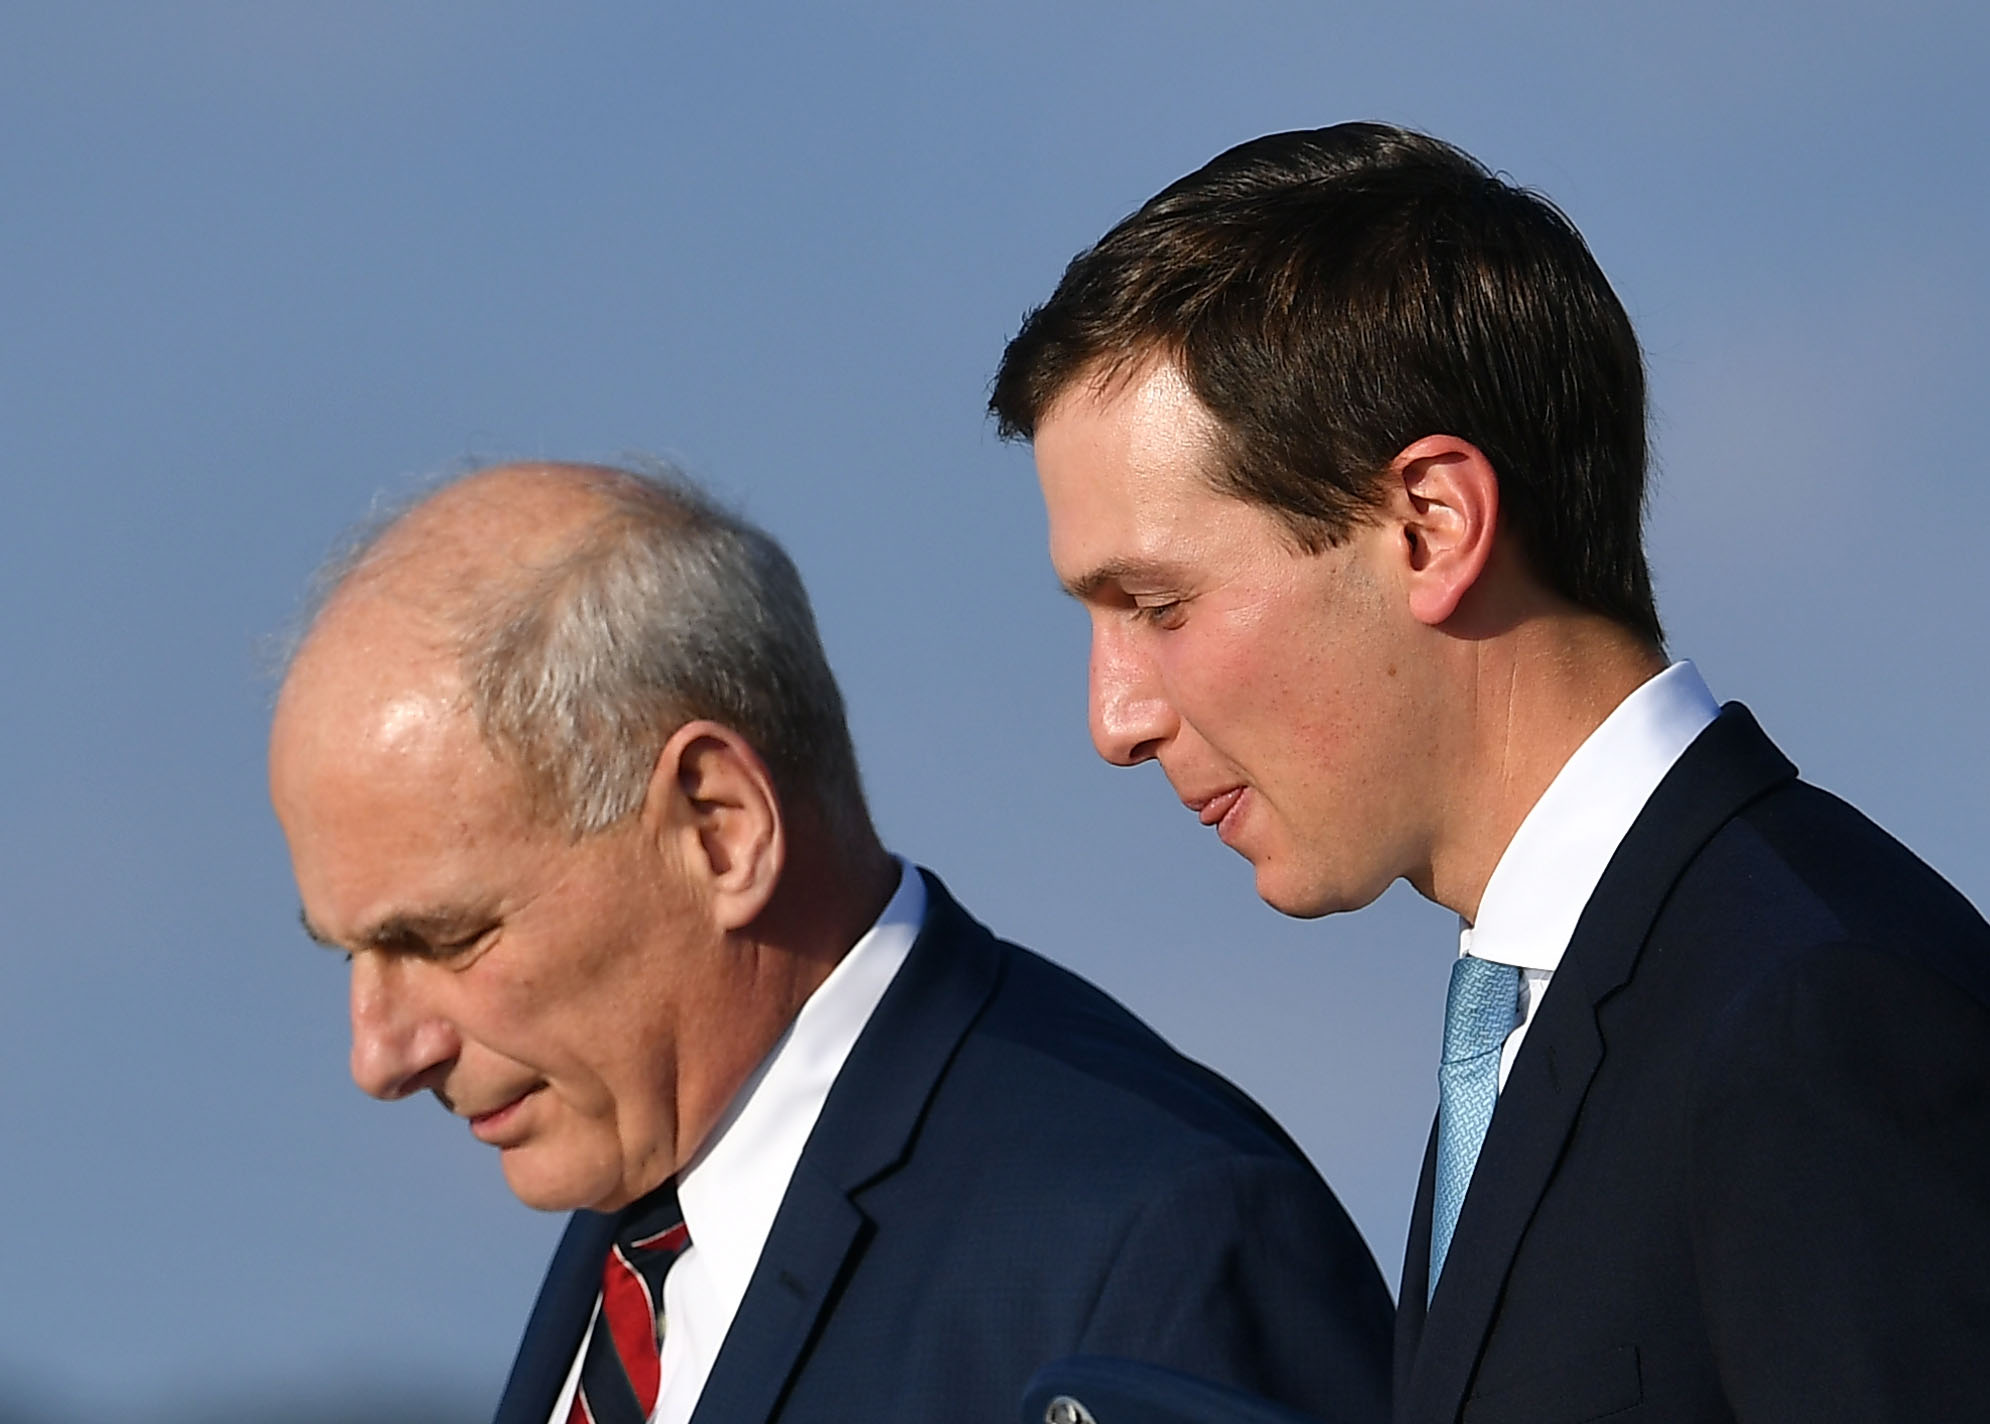 White House senior adviser Jared Kushner (right) and White House chief of staff John Kelly step off Air Force One upon returning to Andrews Air Force Base in Maryland on Oct. 8. | AFP-JIJI